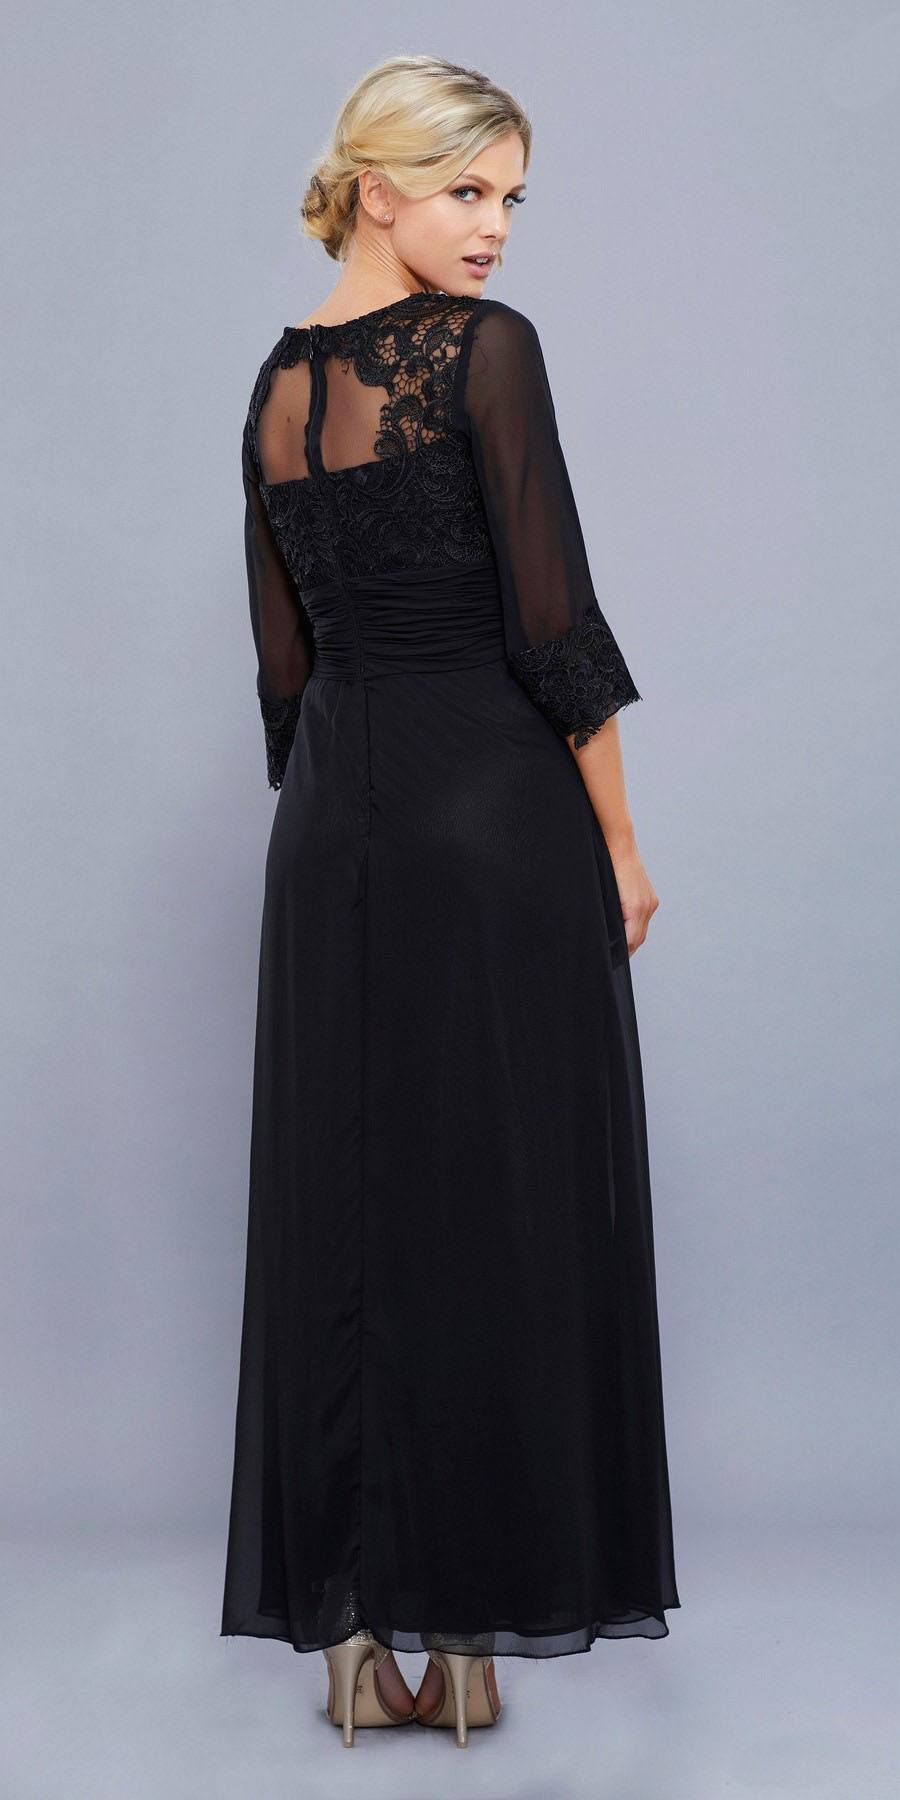 1ffe87f621fc1 ... Ankle Length Mother of Bride Dress Black Mid Sleeves Illusion ...